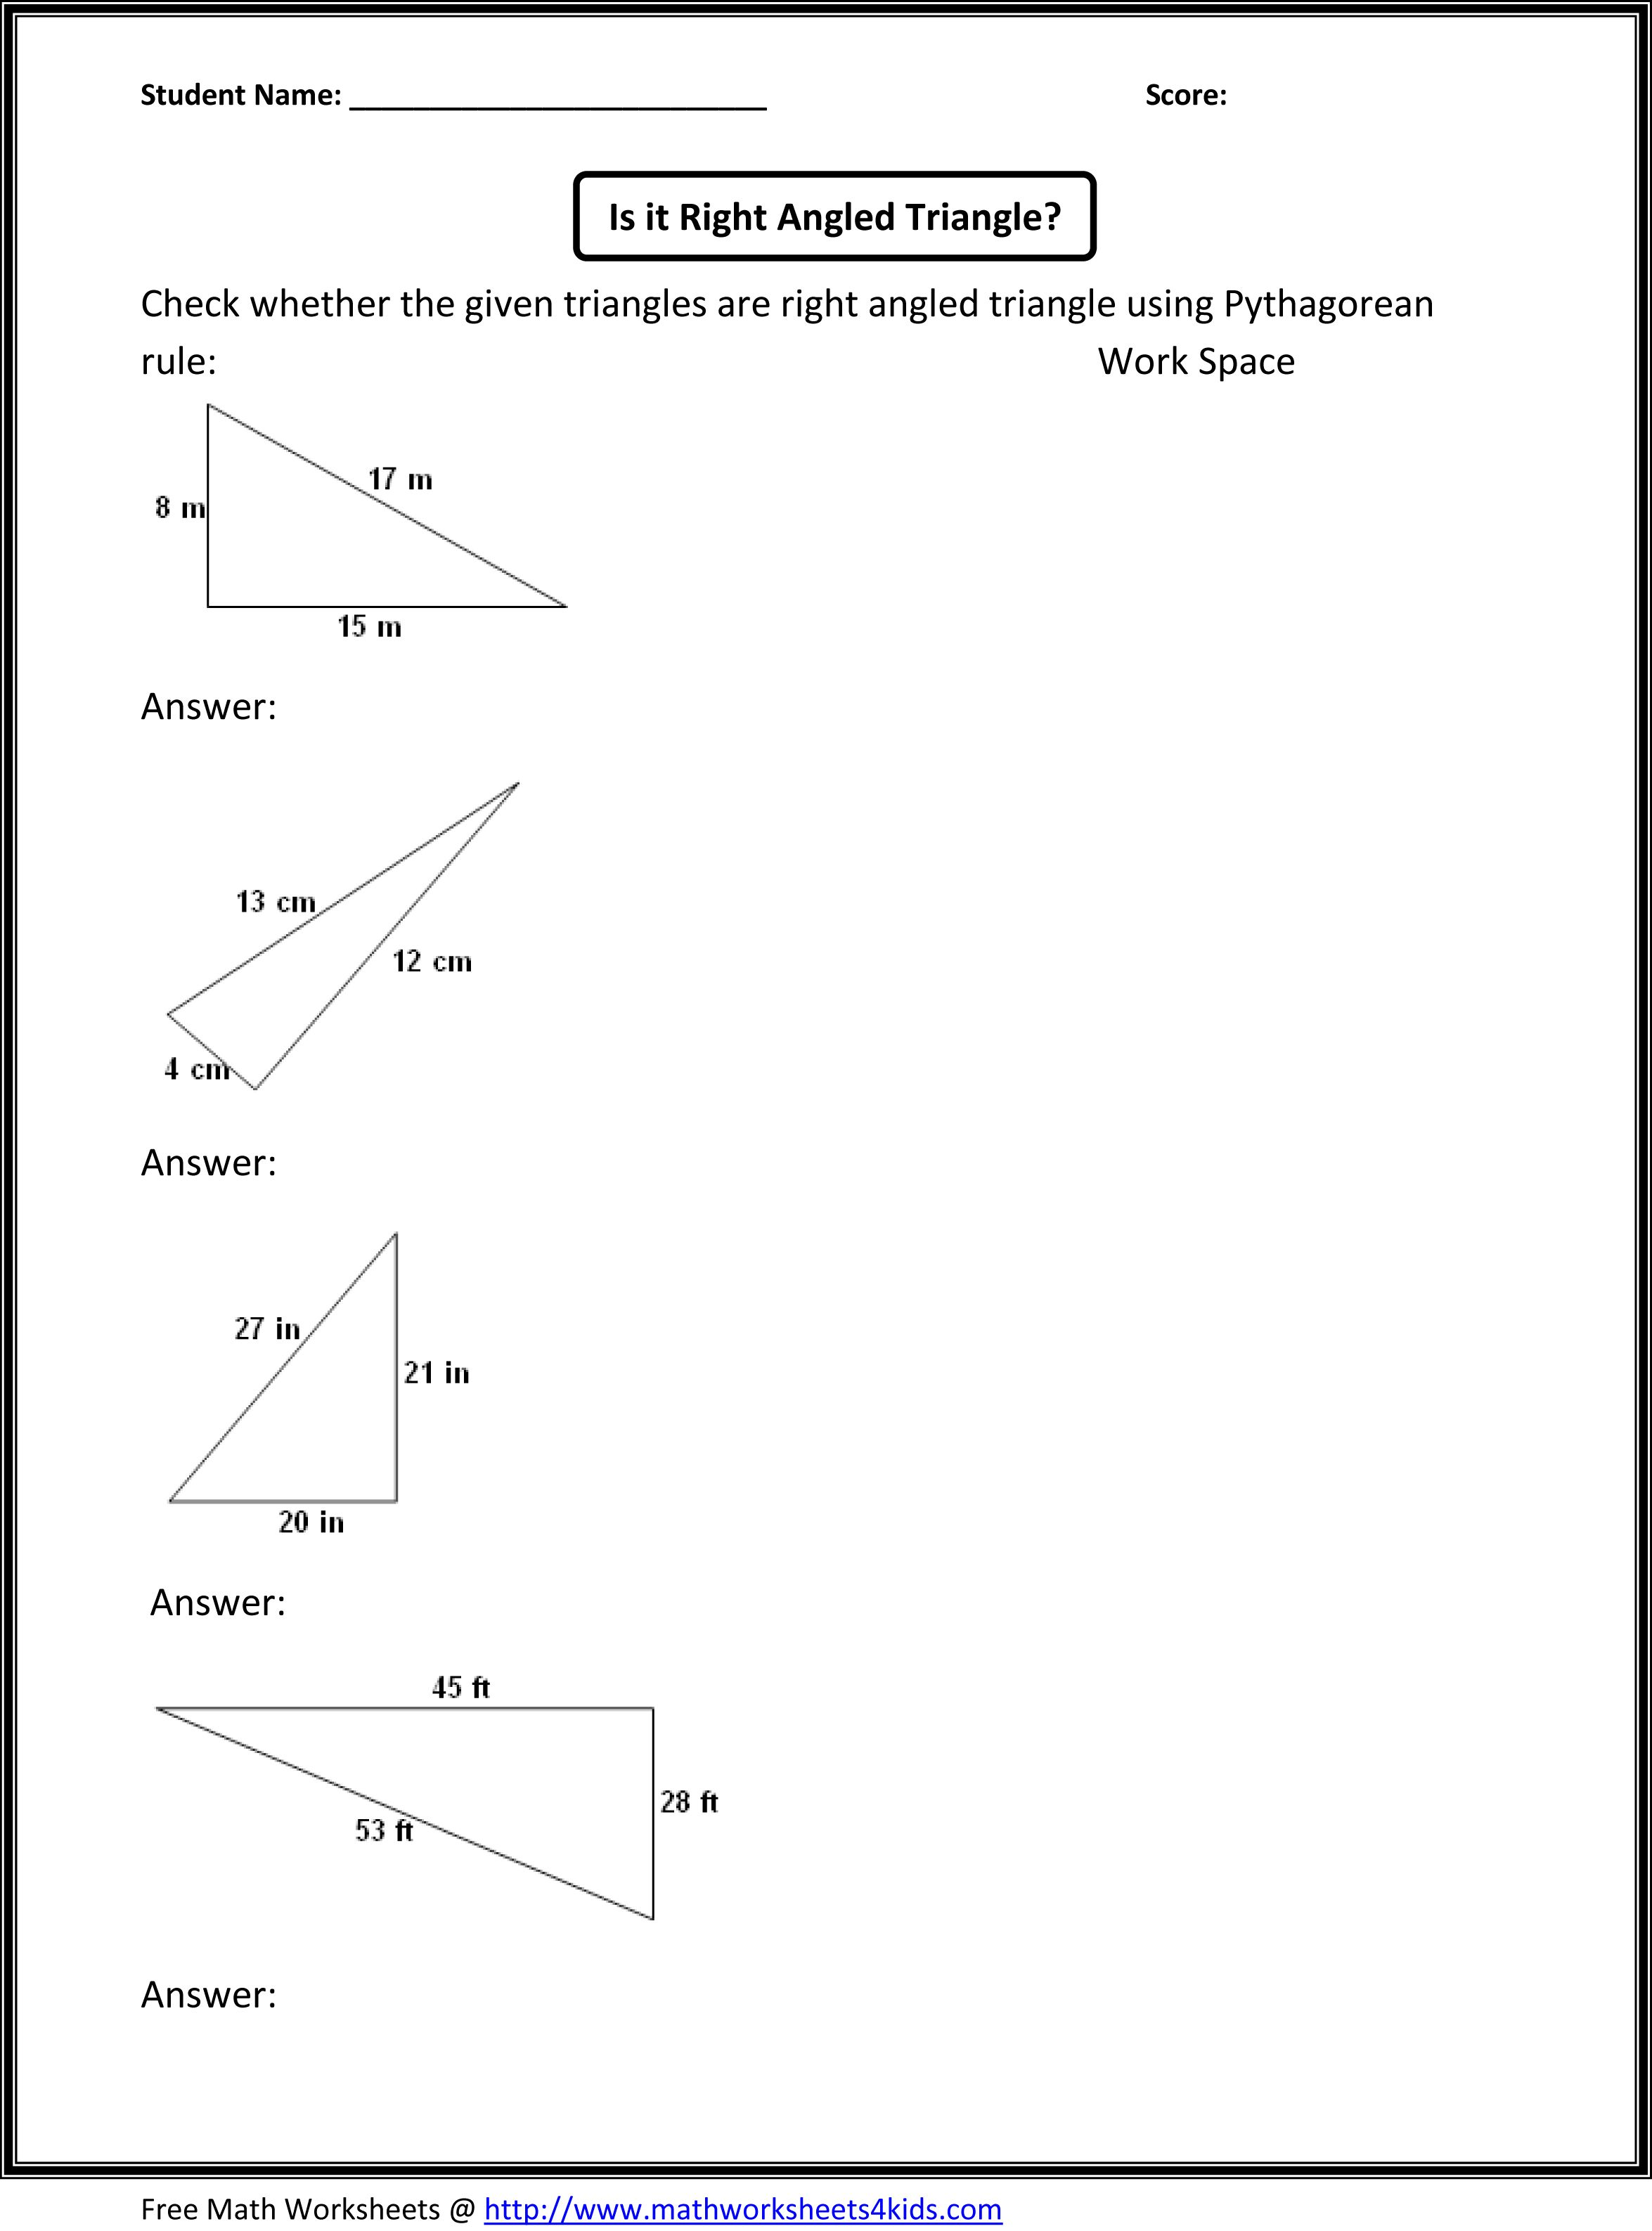 pythagorean theorem worksheets | Pythagorean Theorem Worksheet ...